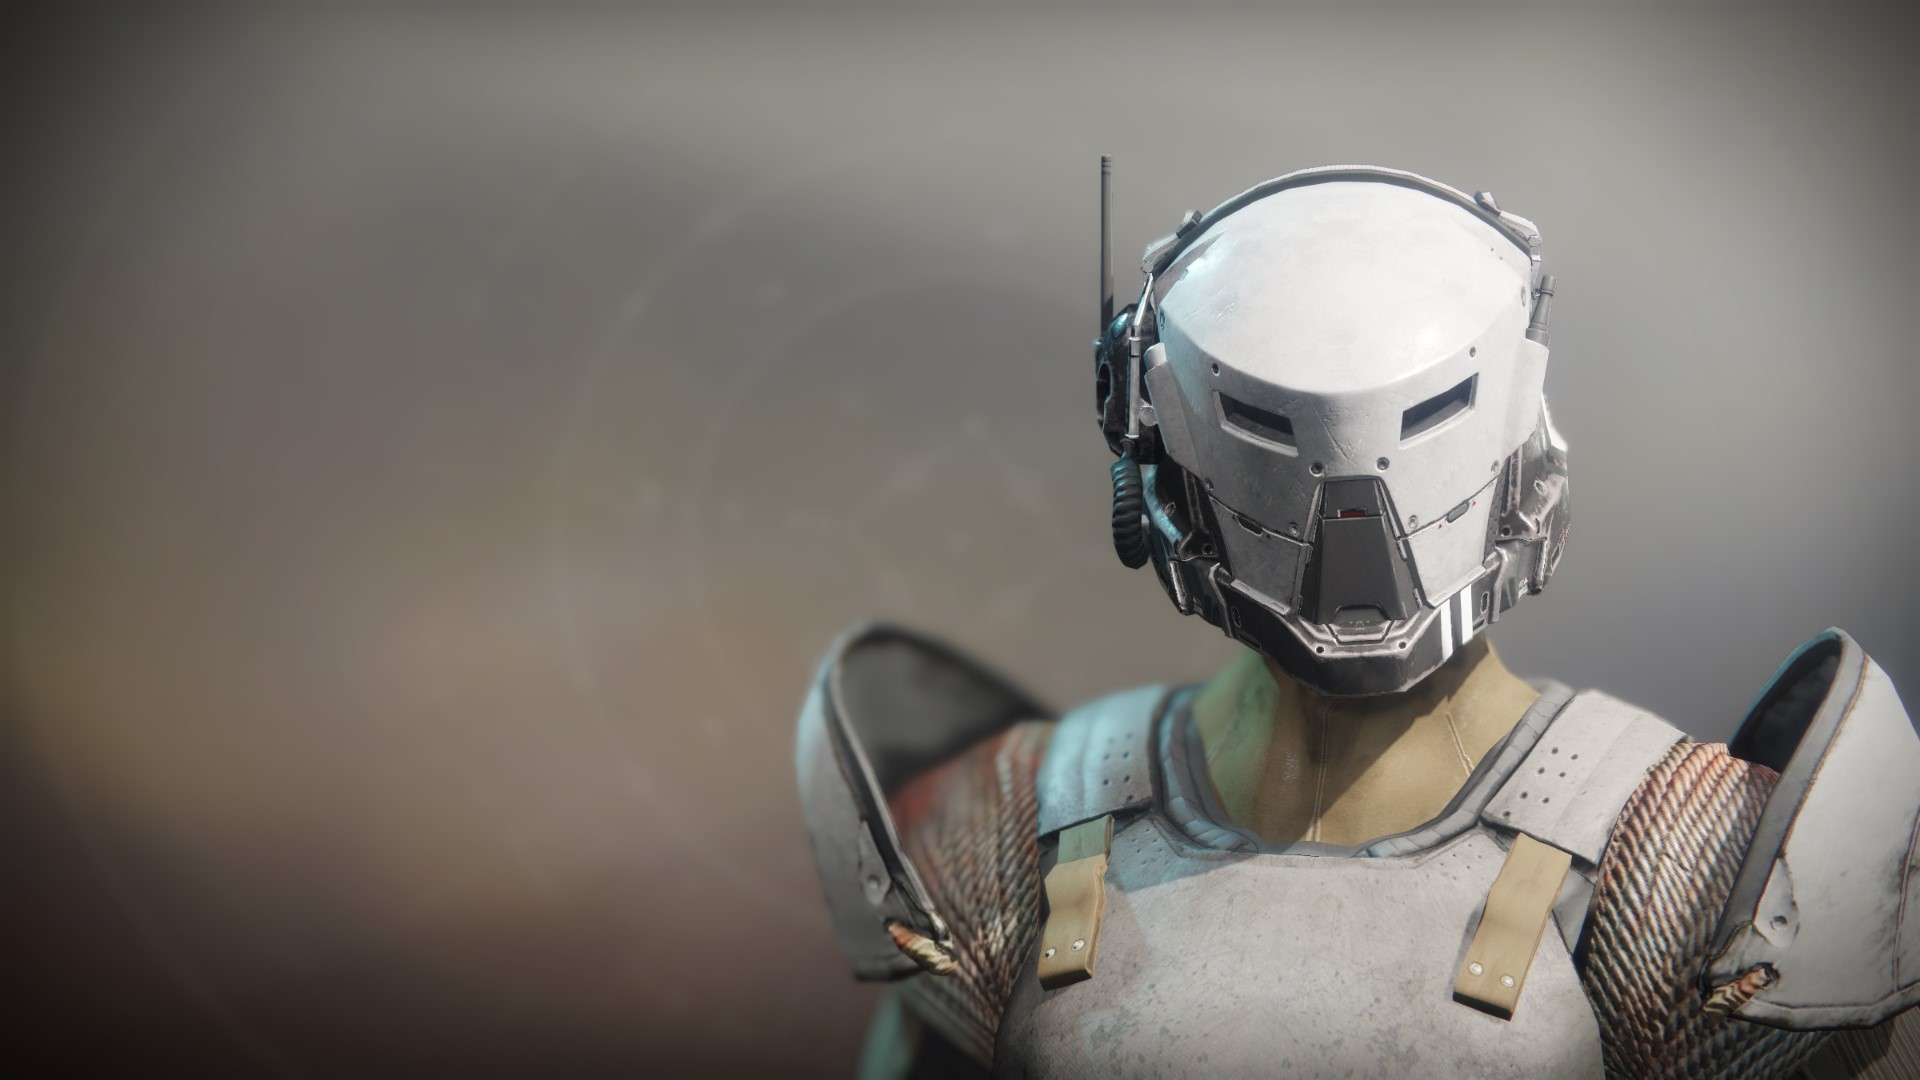 An in-game render of the Anti-Extinction Helm.